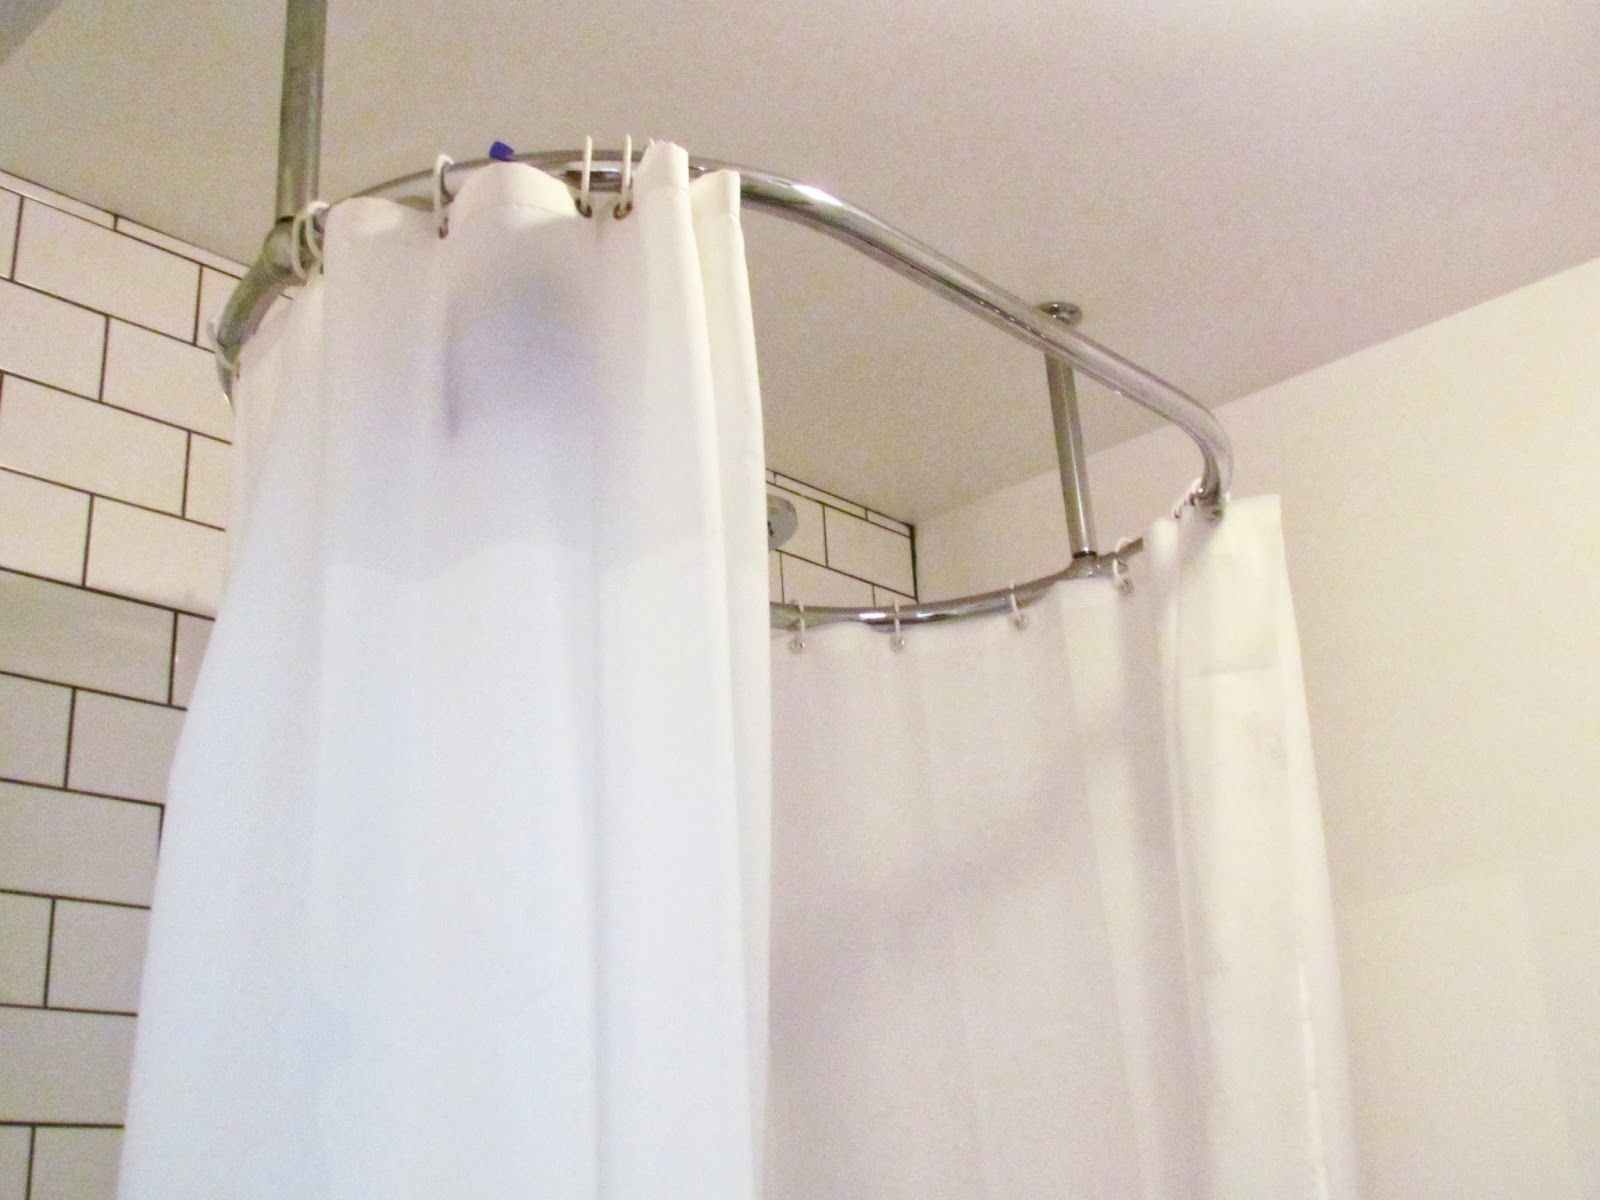 Hang Shower Curtain From Ceiling